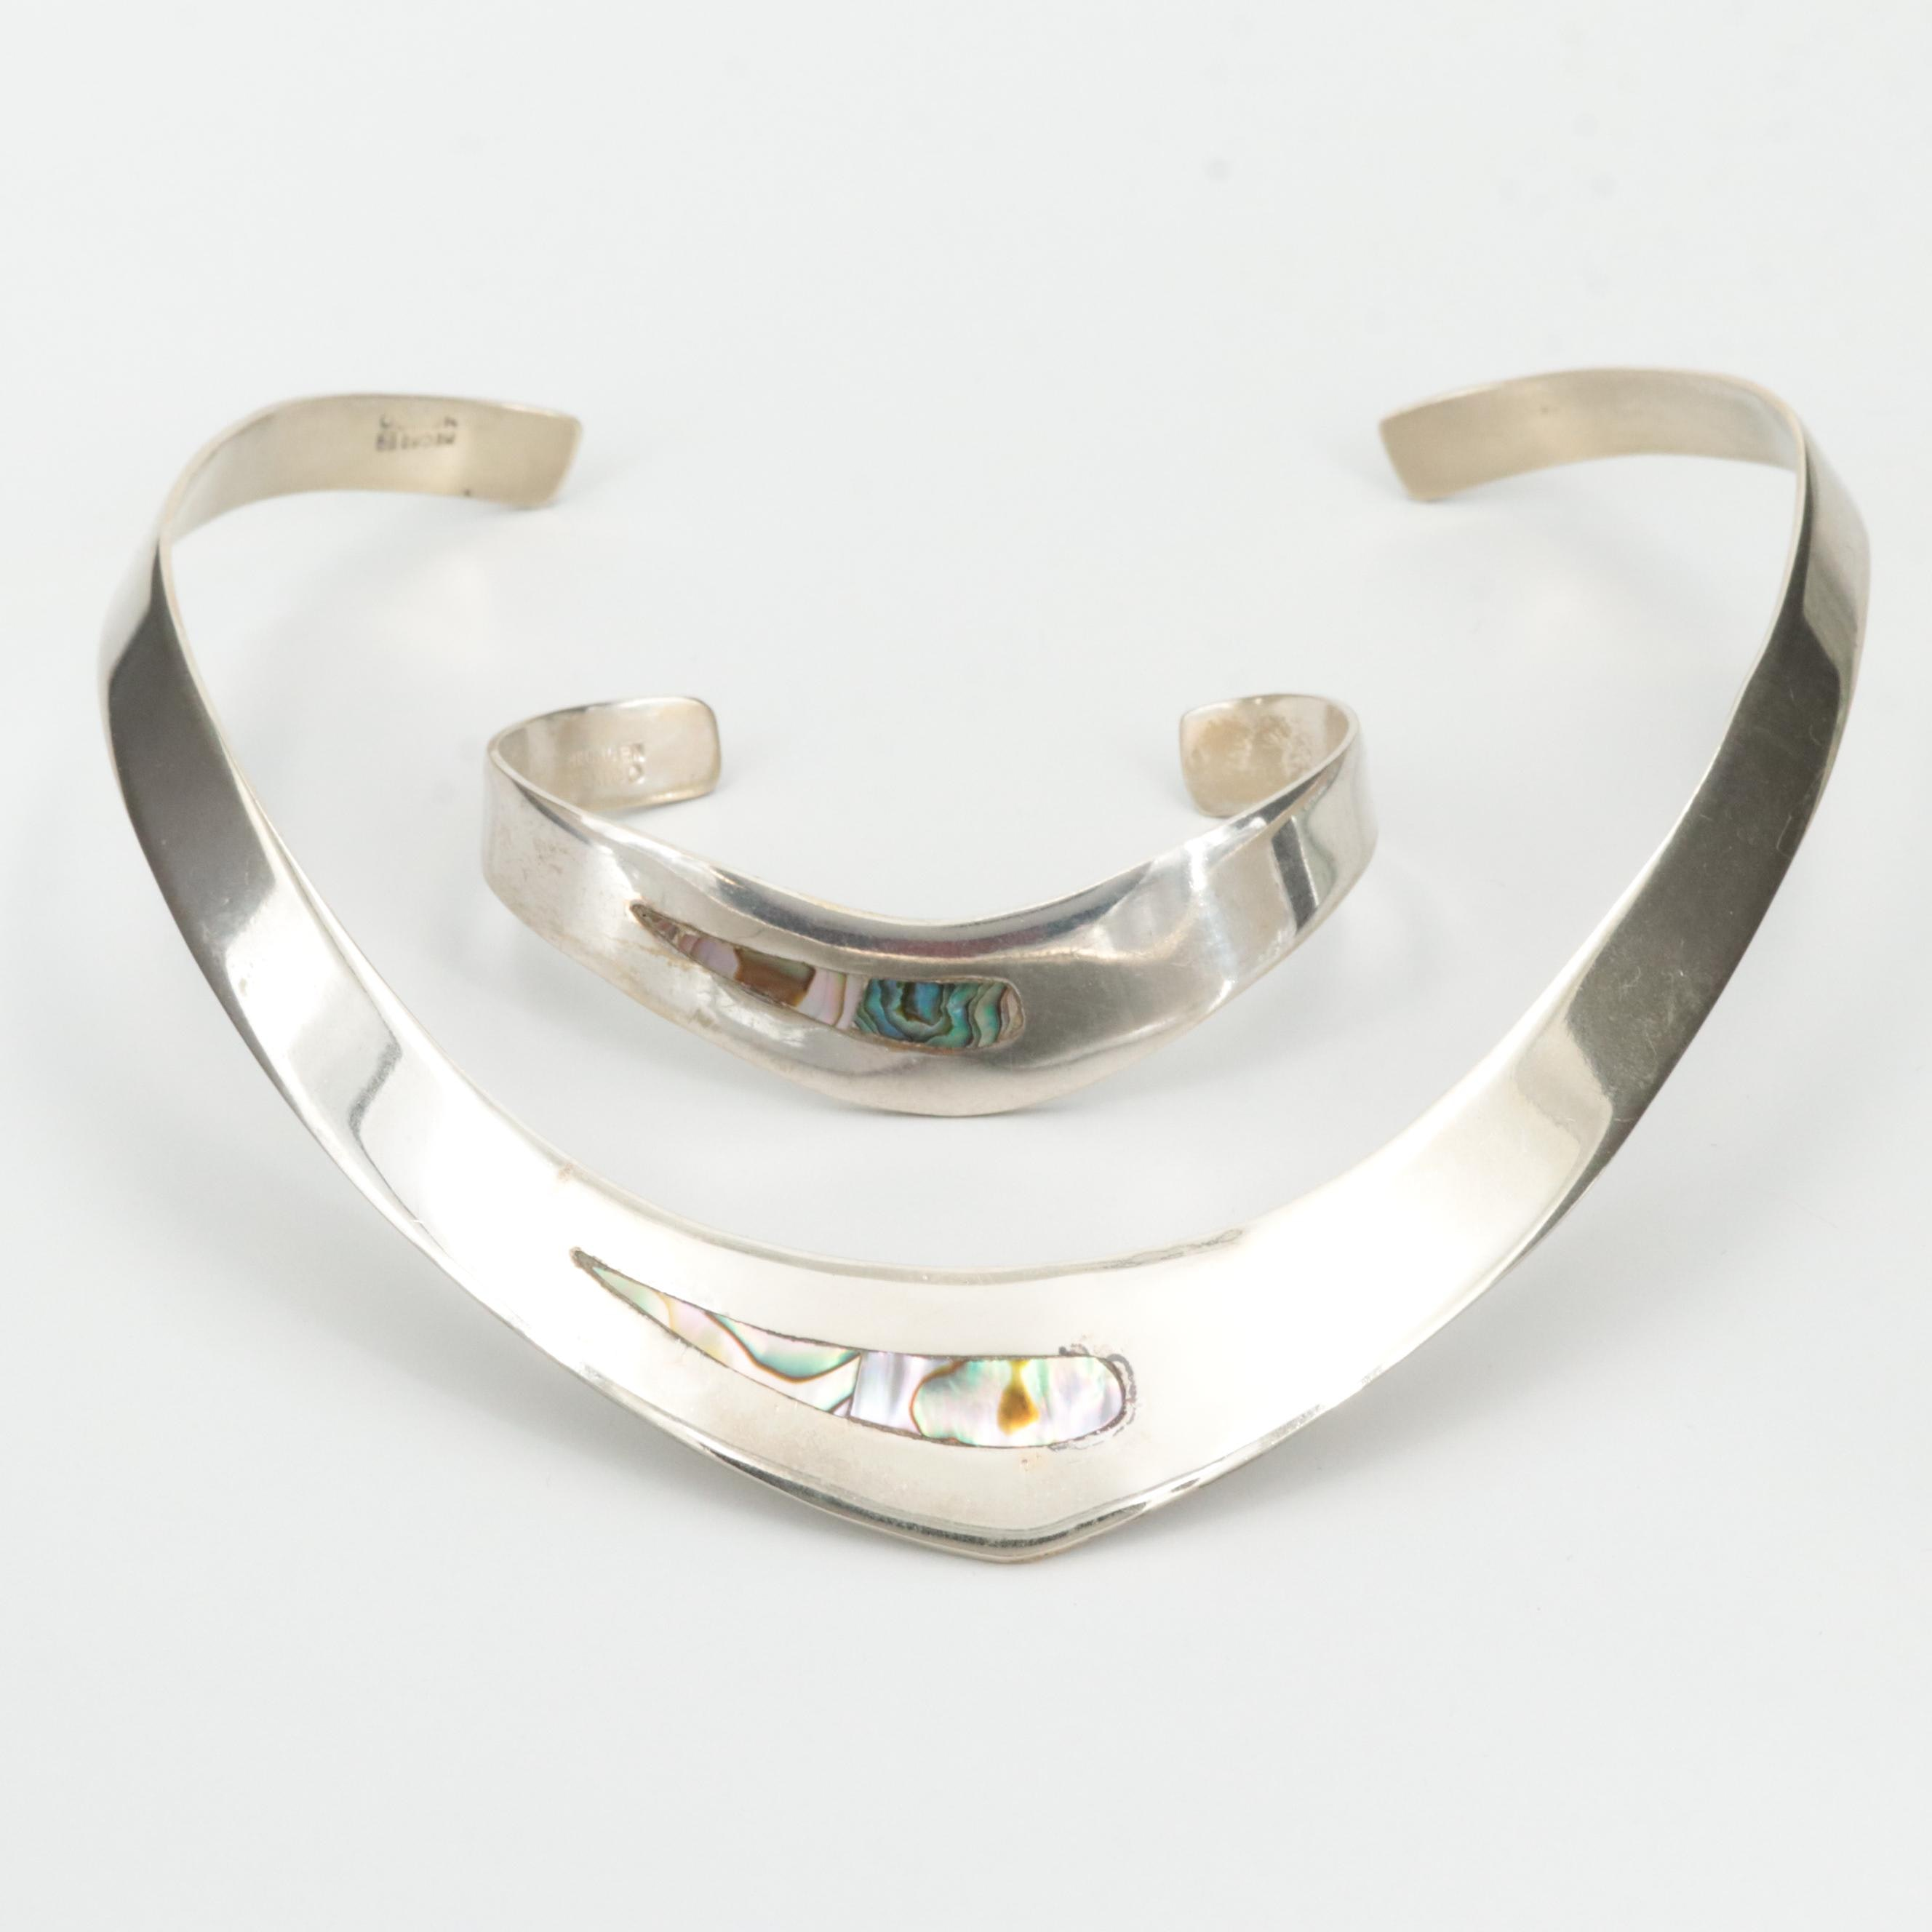 Mexican Silver Tone Abalone Necklace and Bracelet Set